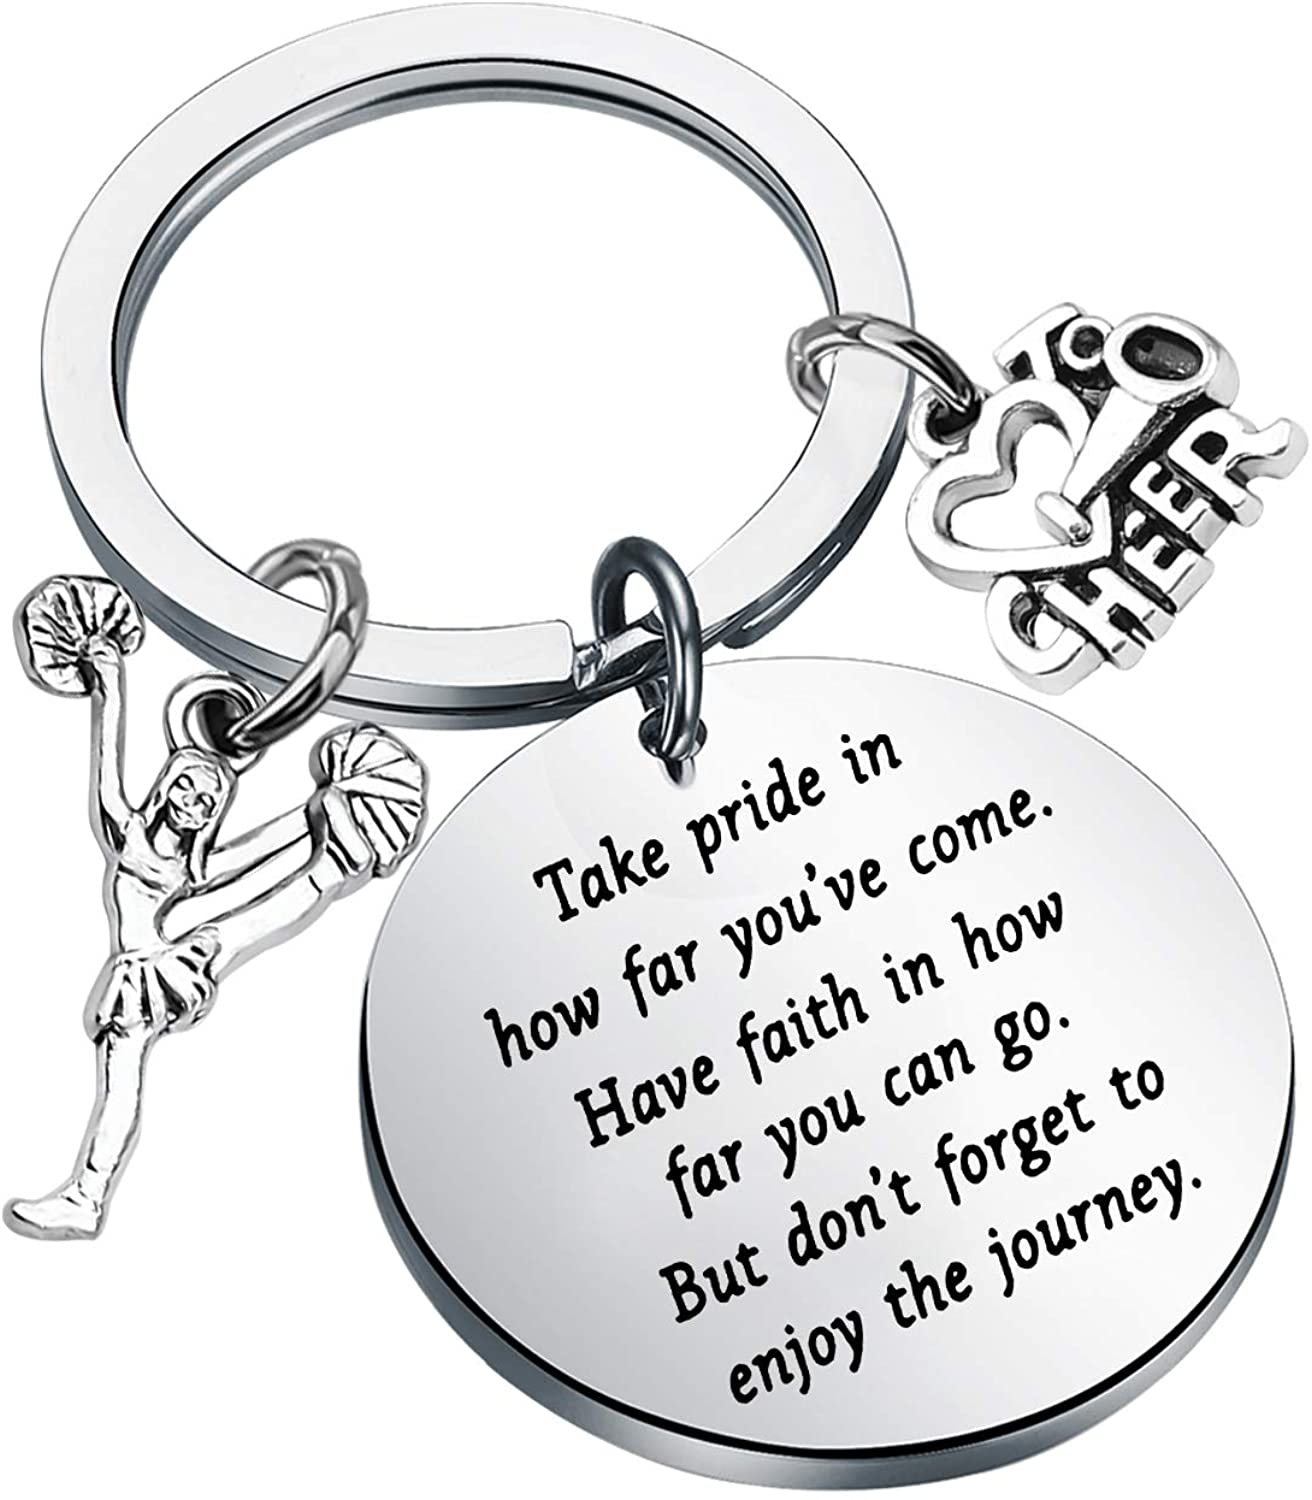 FUSTMW Cheer Keychains Cheerleading Gifts Cheerleader Coaches Gift Cheer Team Gift Cheer Jewelry for Girls Cheerleading Charms Inspiration Gifts Take Pride in How for You are Come